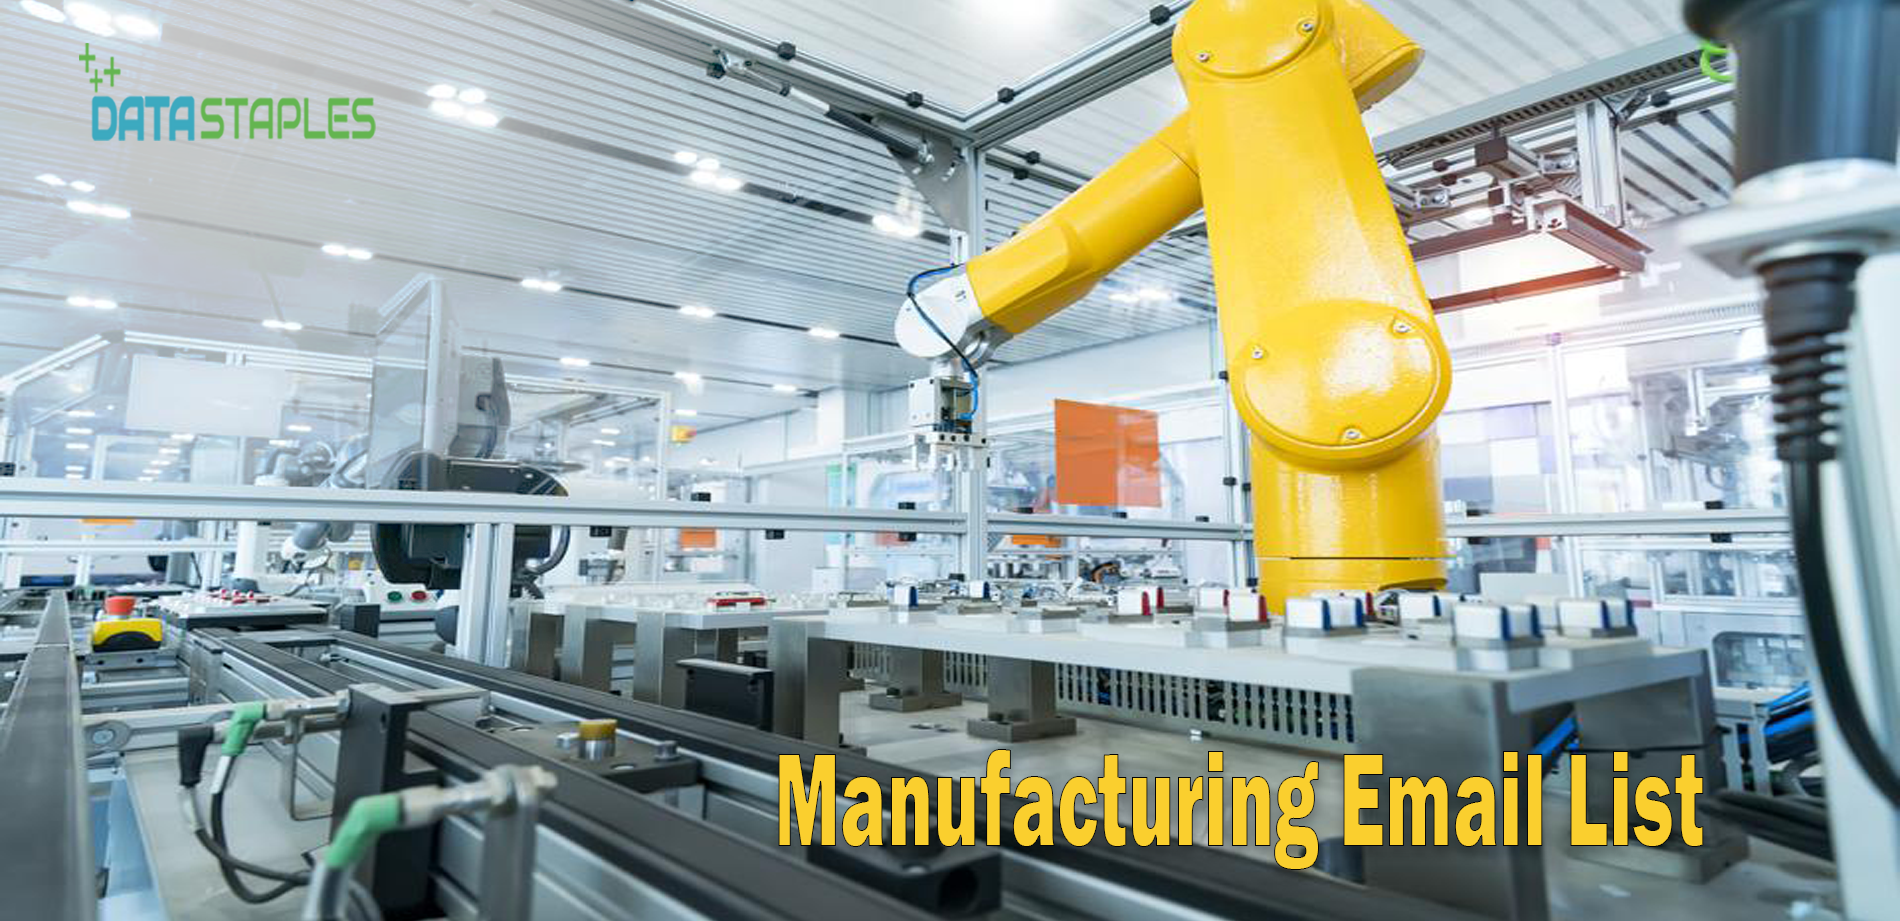 Manufacturing Email List | DataStaples